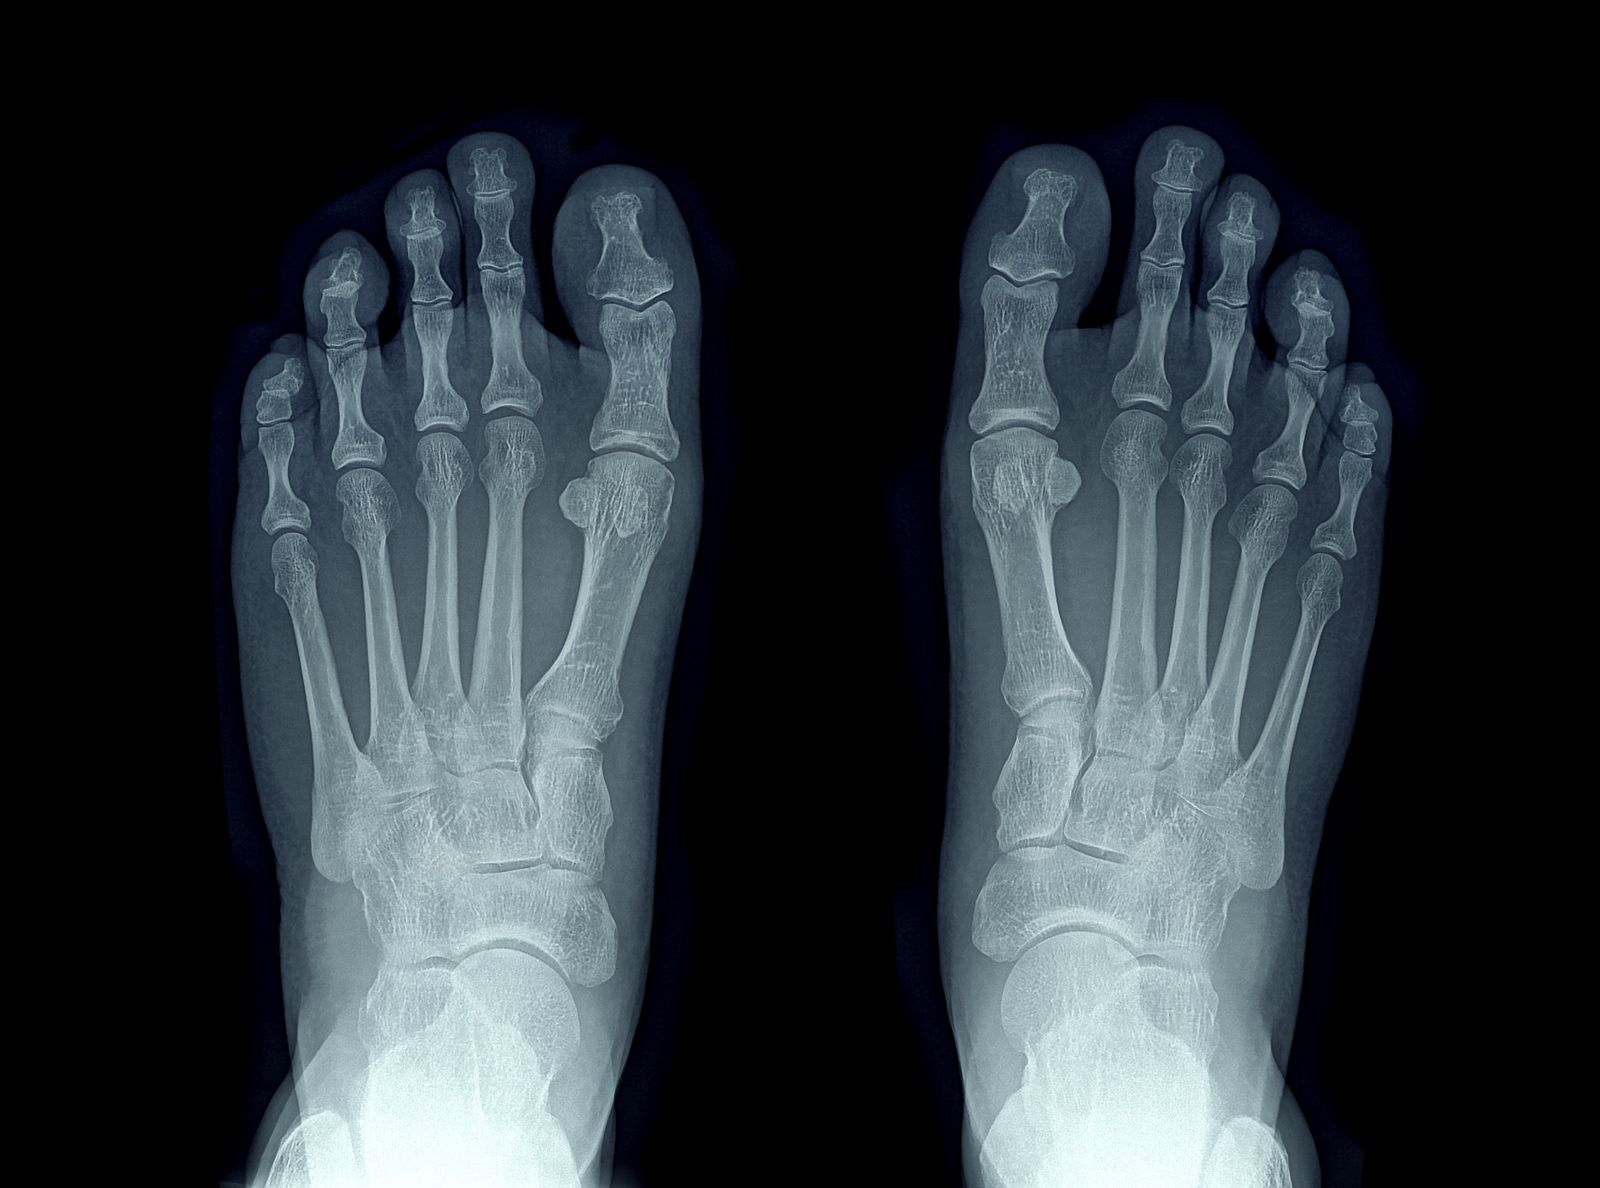 Research shows that bunions are more common among older adults